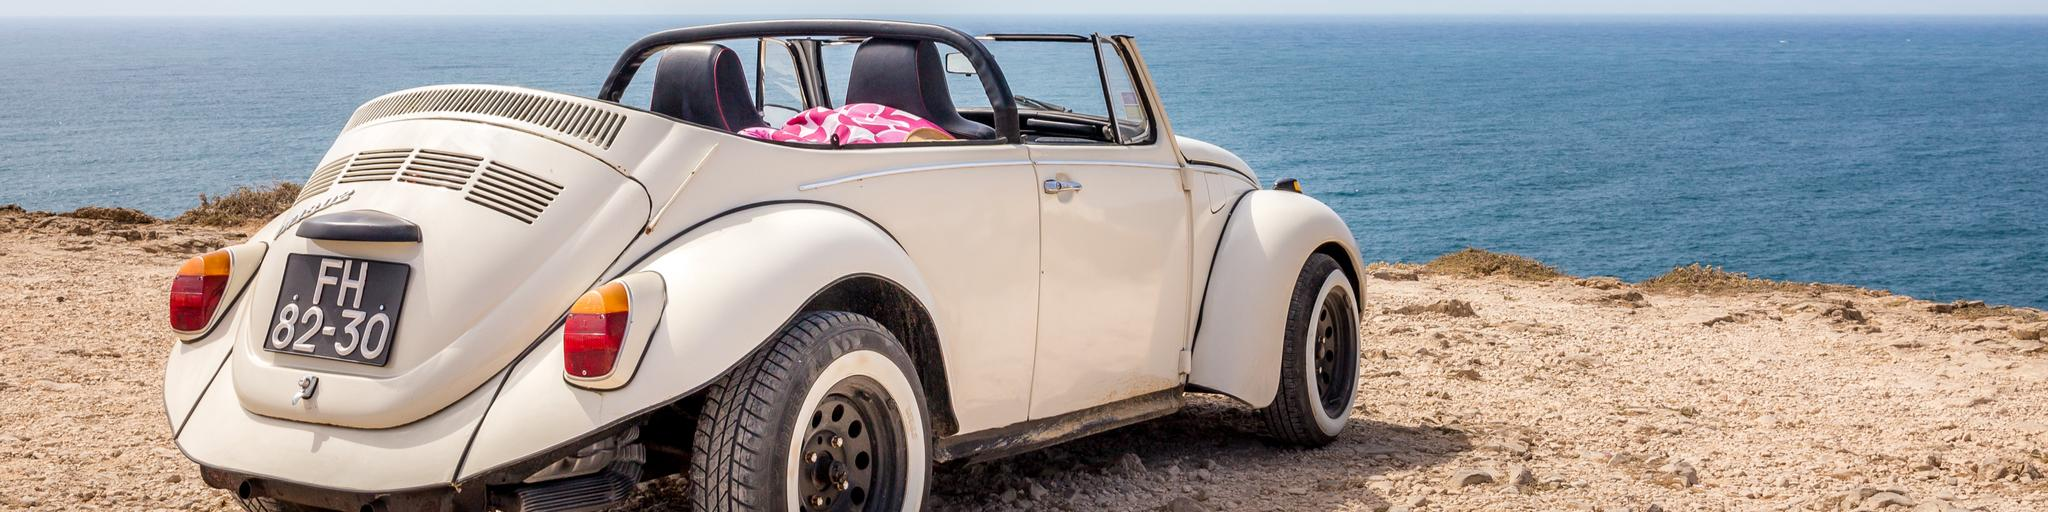 A classic car parked on a ledge overlooking the sea in Cape St Vincent in Portugal